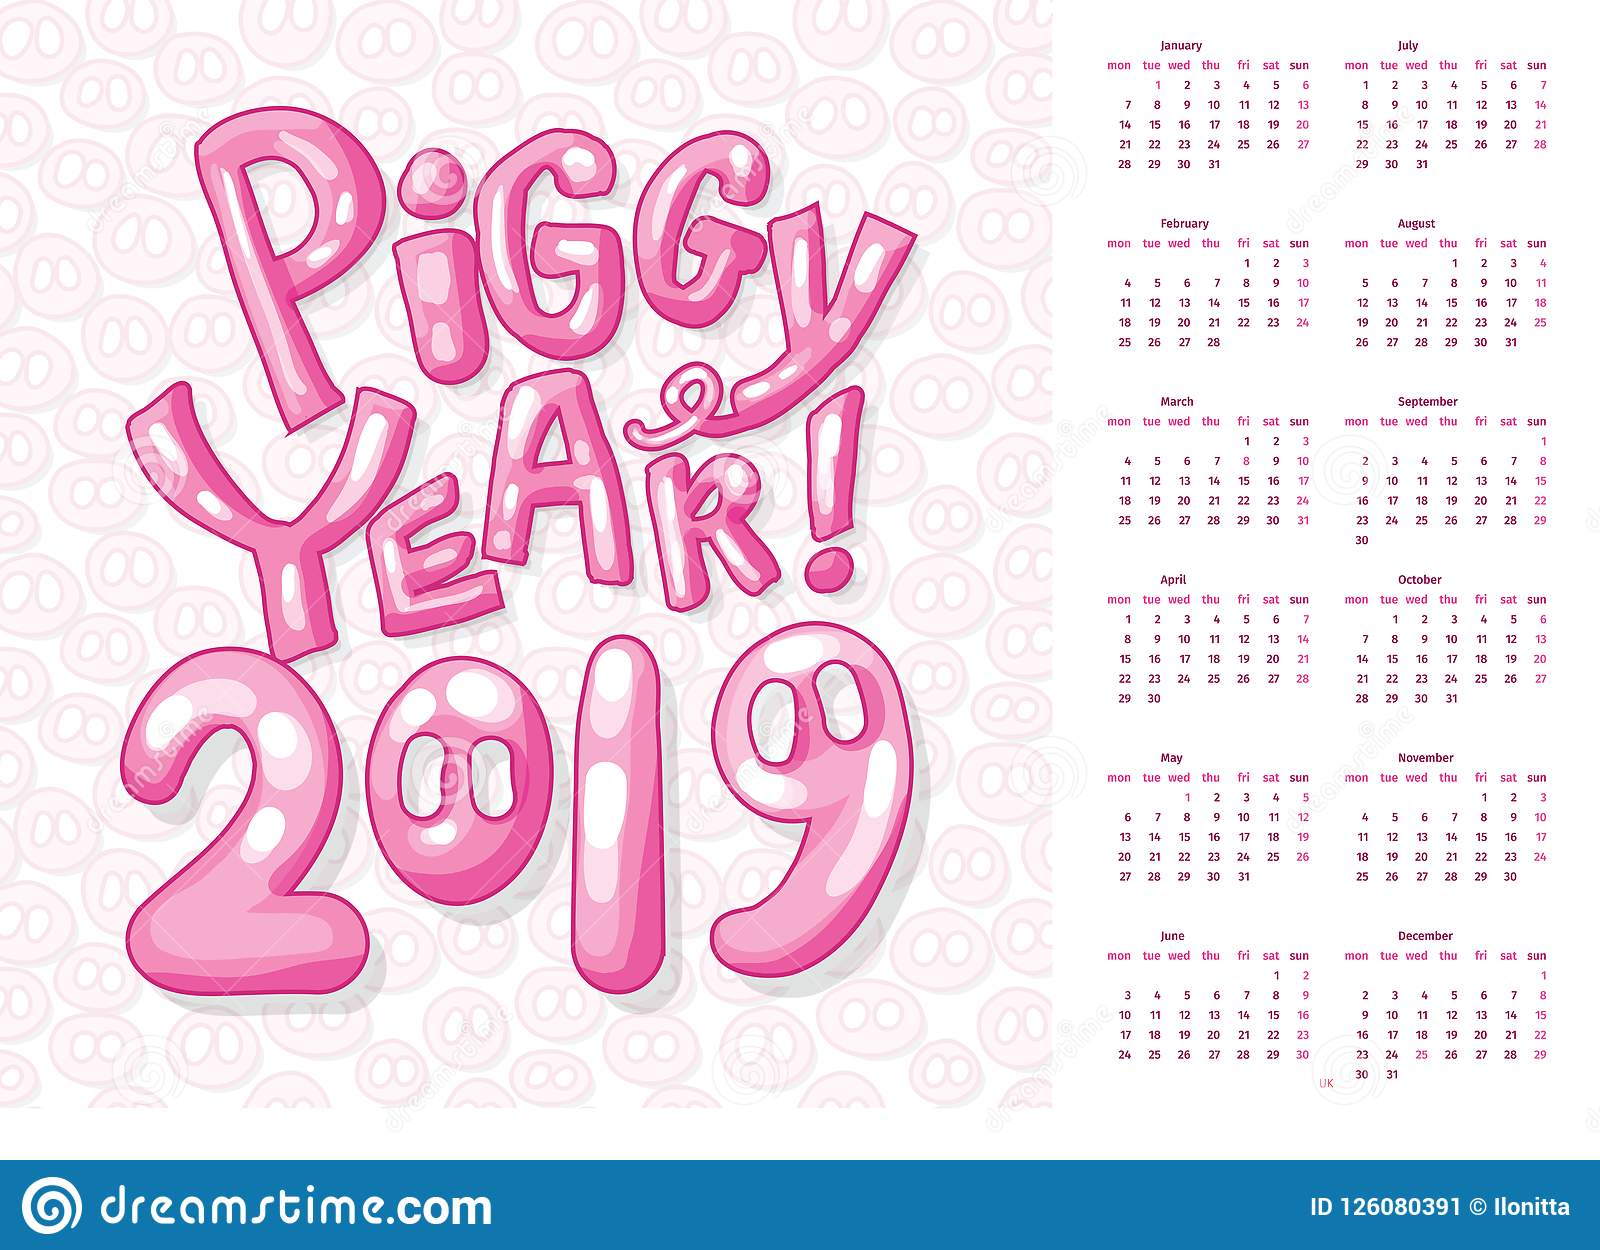 Uk Calendar Cover For 2019 New Year Of Pig Calendar Or Poster Stock ...